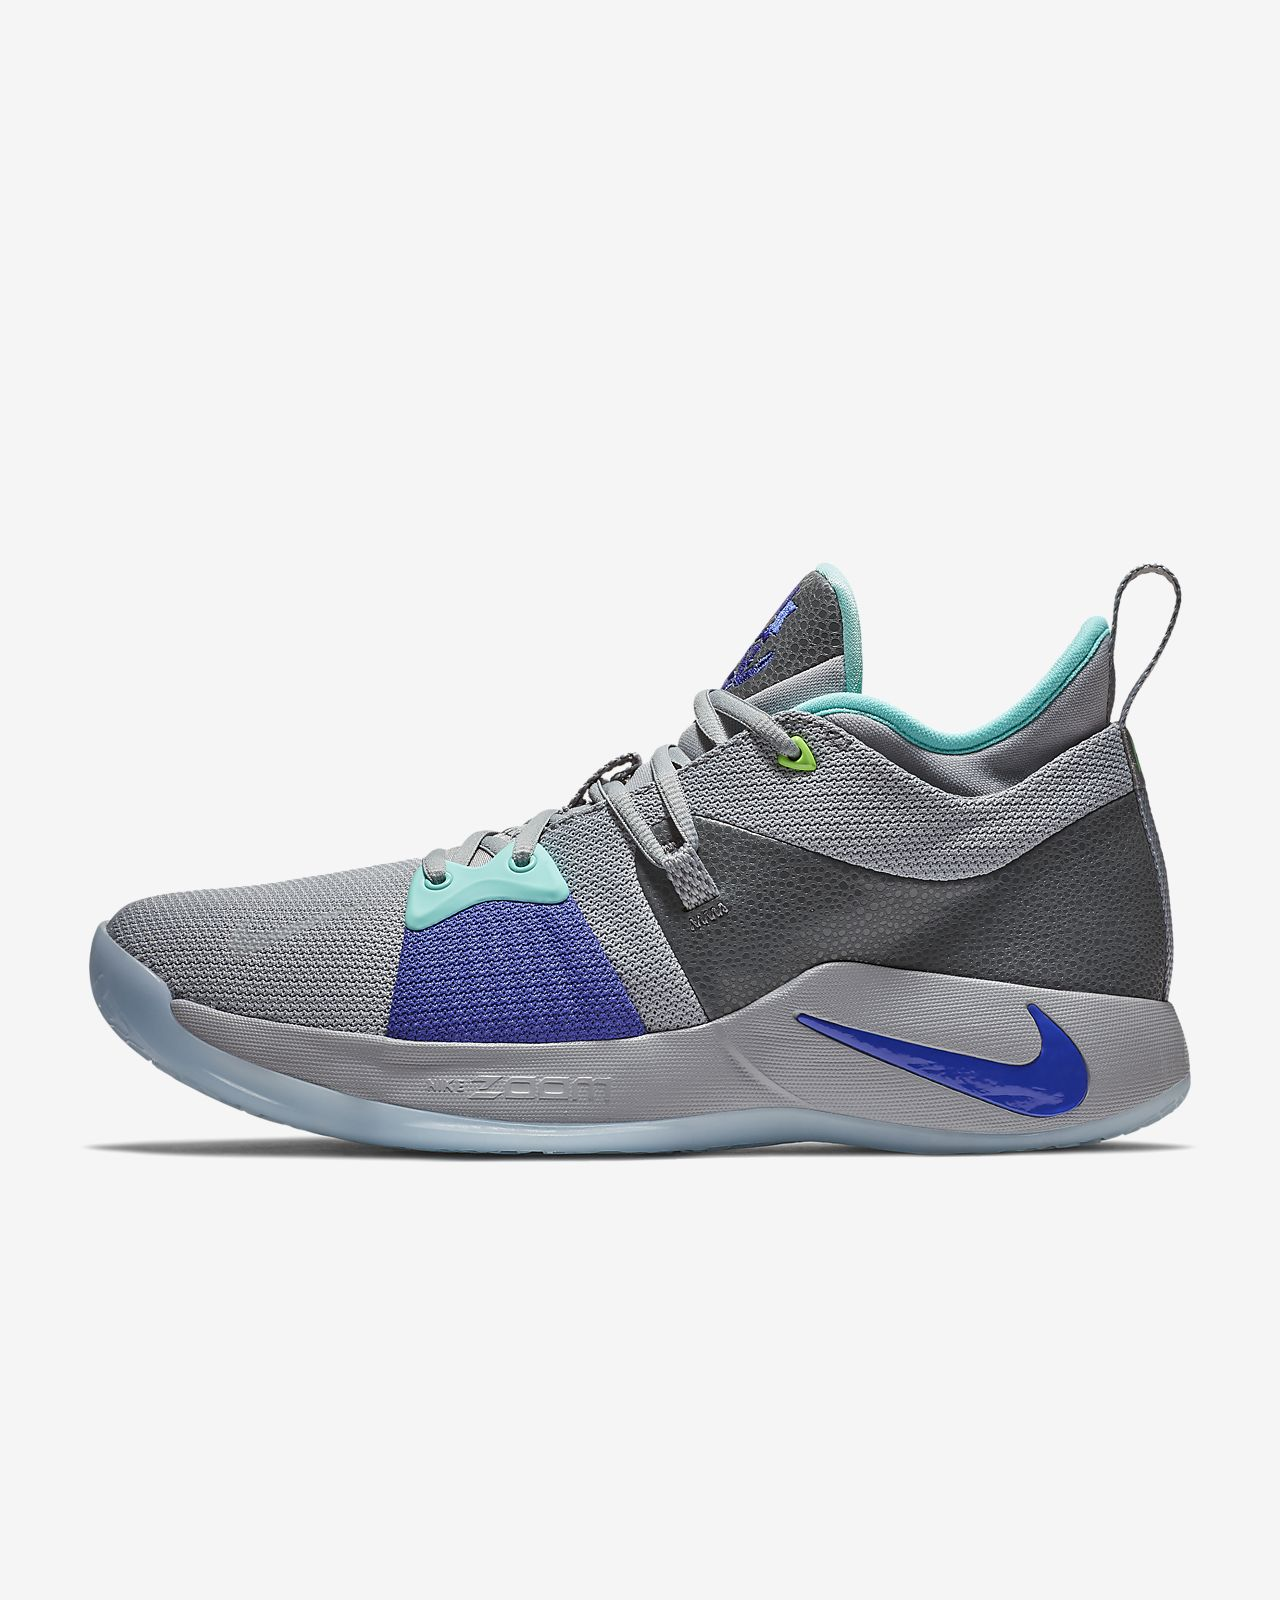 PG 2 Basketball Shoe